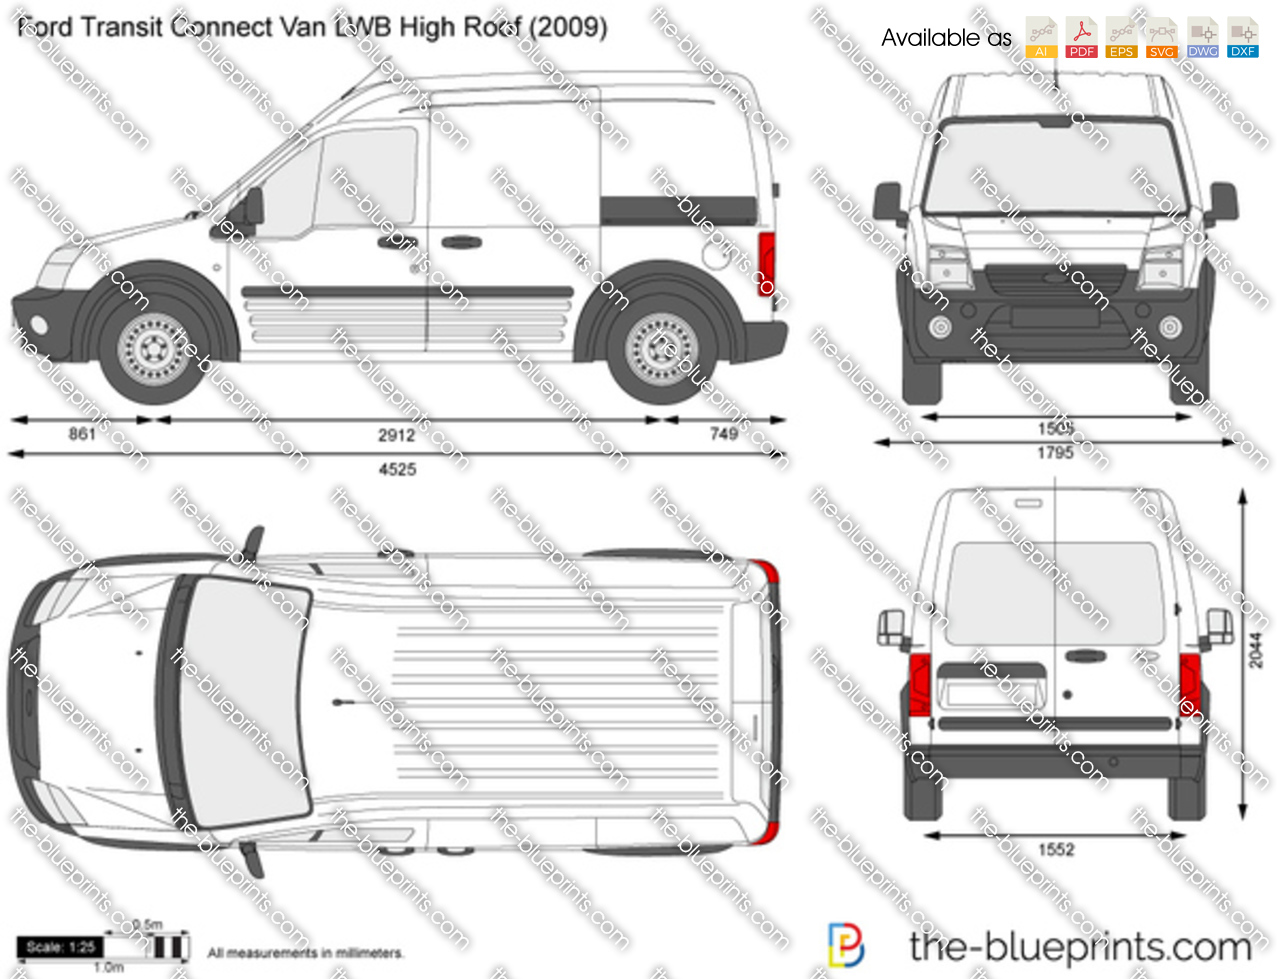 Ford Transit Connect Van LWB High Roof 2005